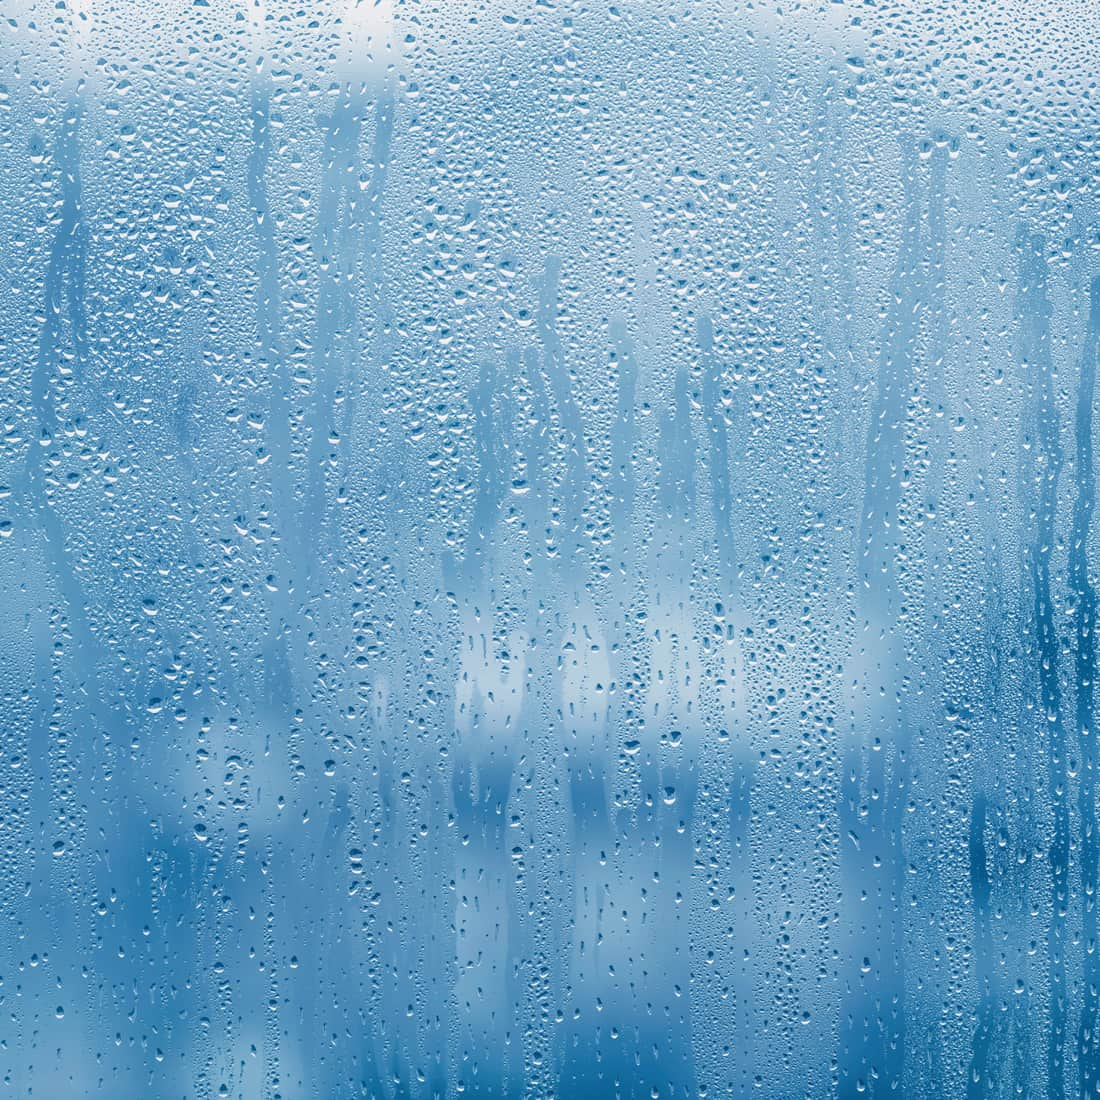 Condensation on glass window with water drops